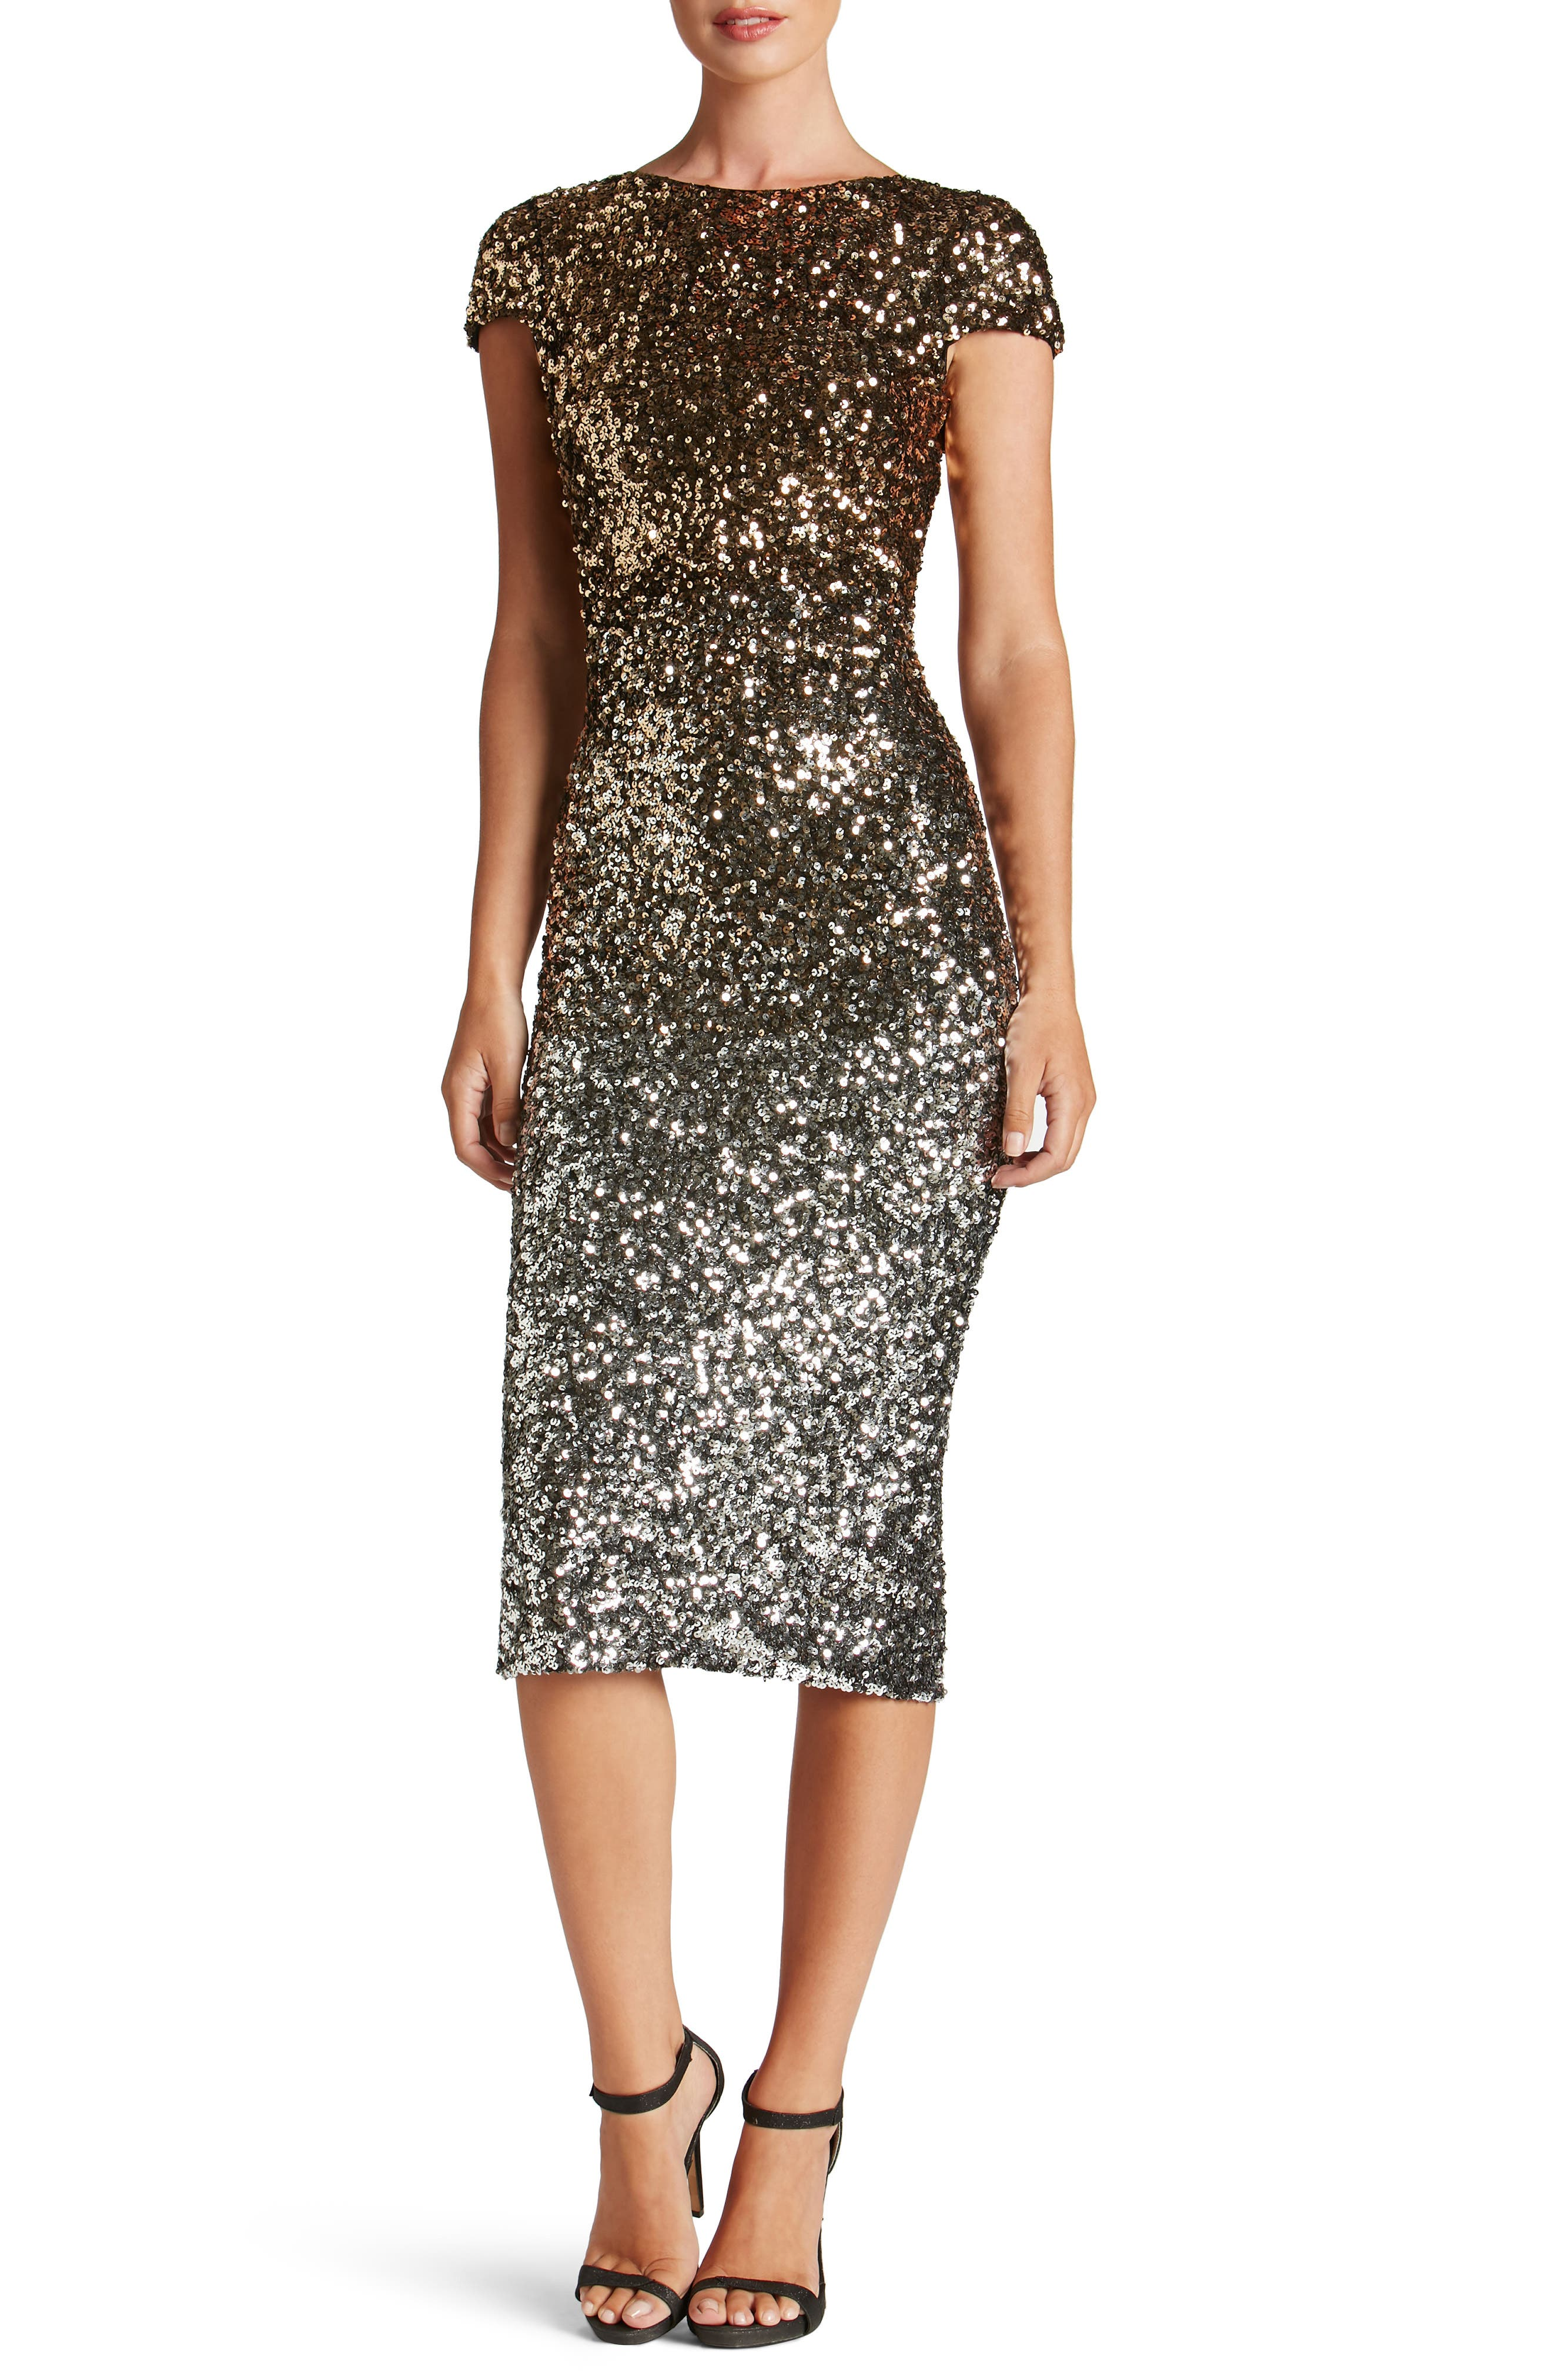 Alternate Image 1 Selected - Dress the Population Marcella Ombré Sequin Body-Con Dress